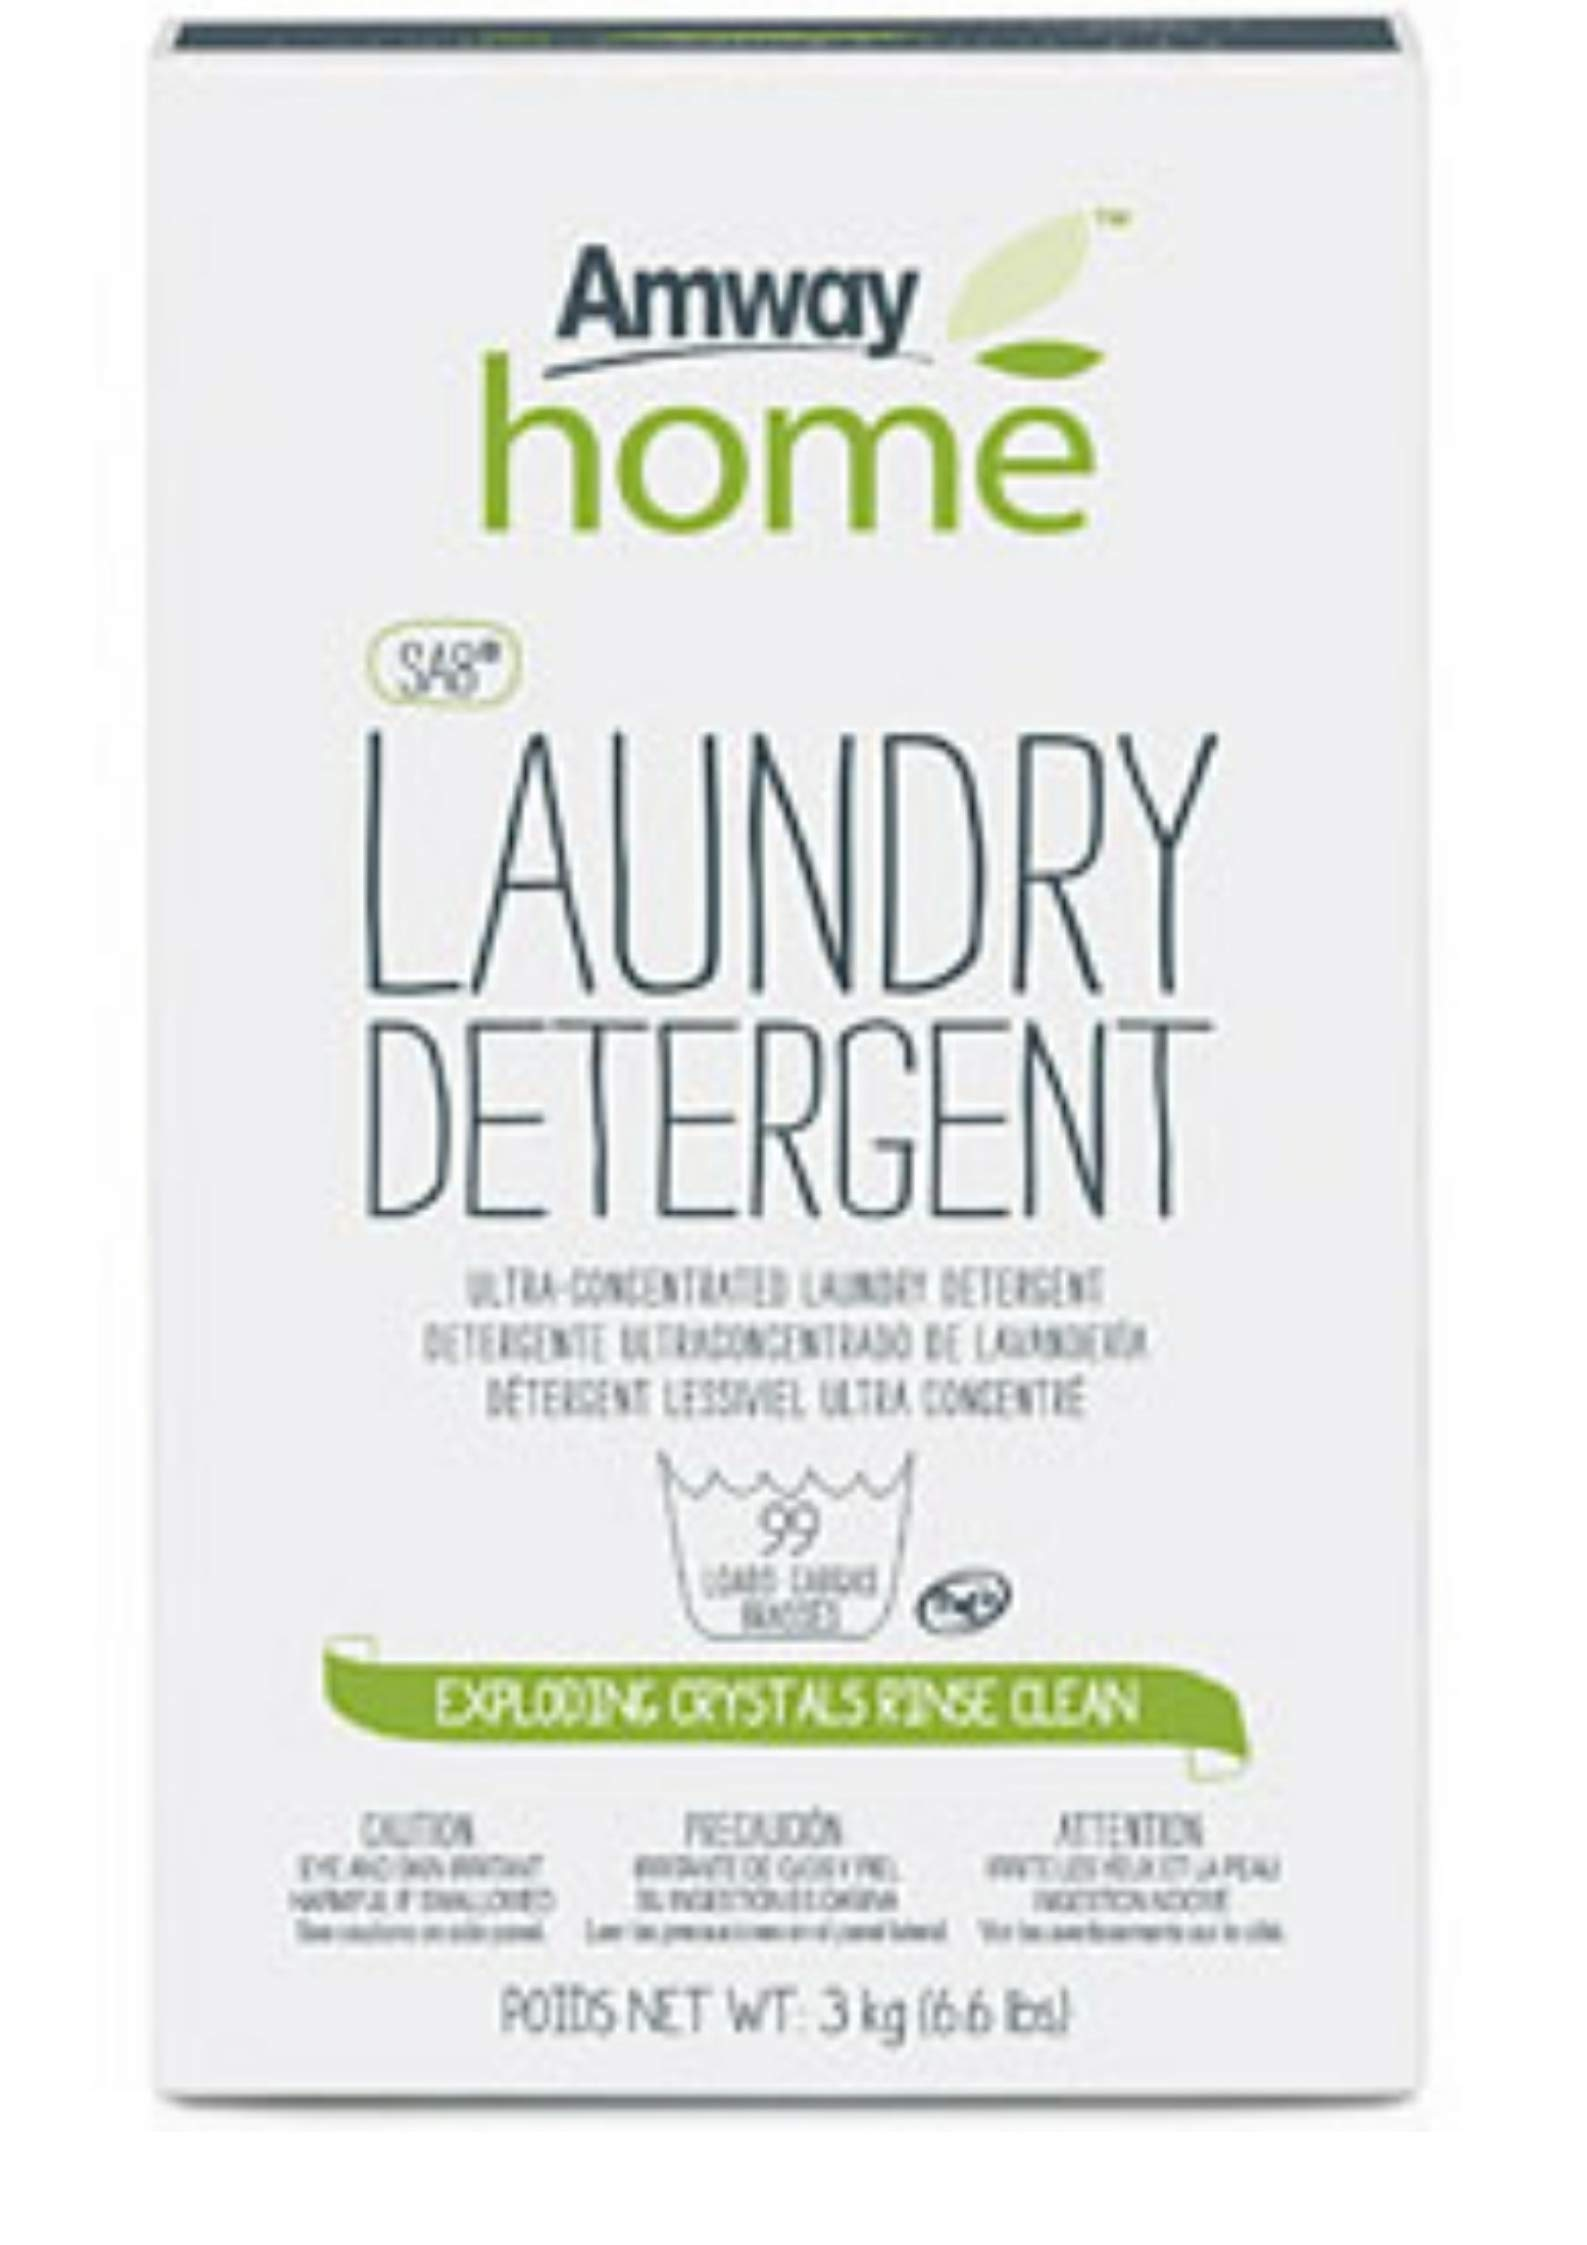 Amway Home SA8 Powder Laundry Detergent 3 kg / 6.6 lbs. up to 99 loadscm by Amway Legacy of Clean SA8